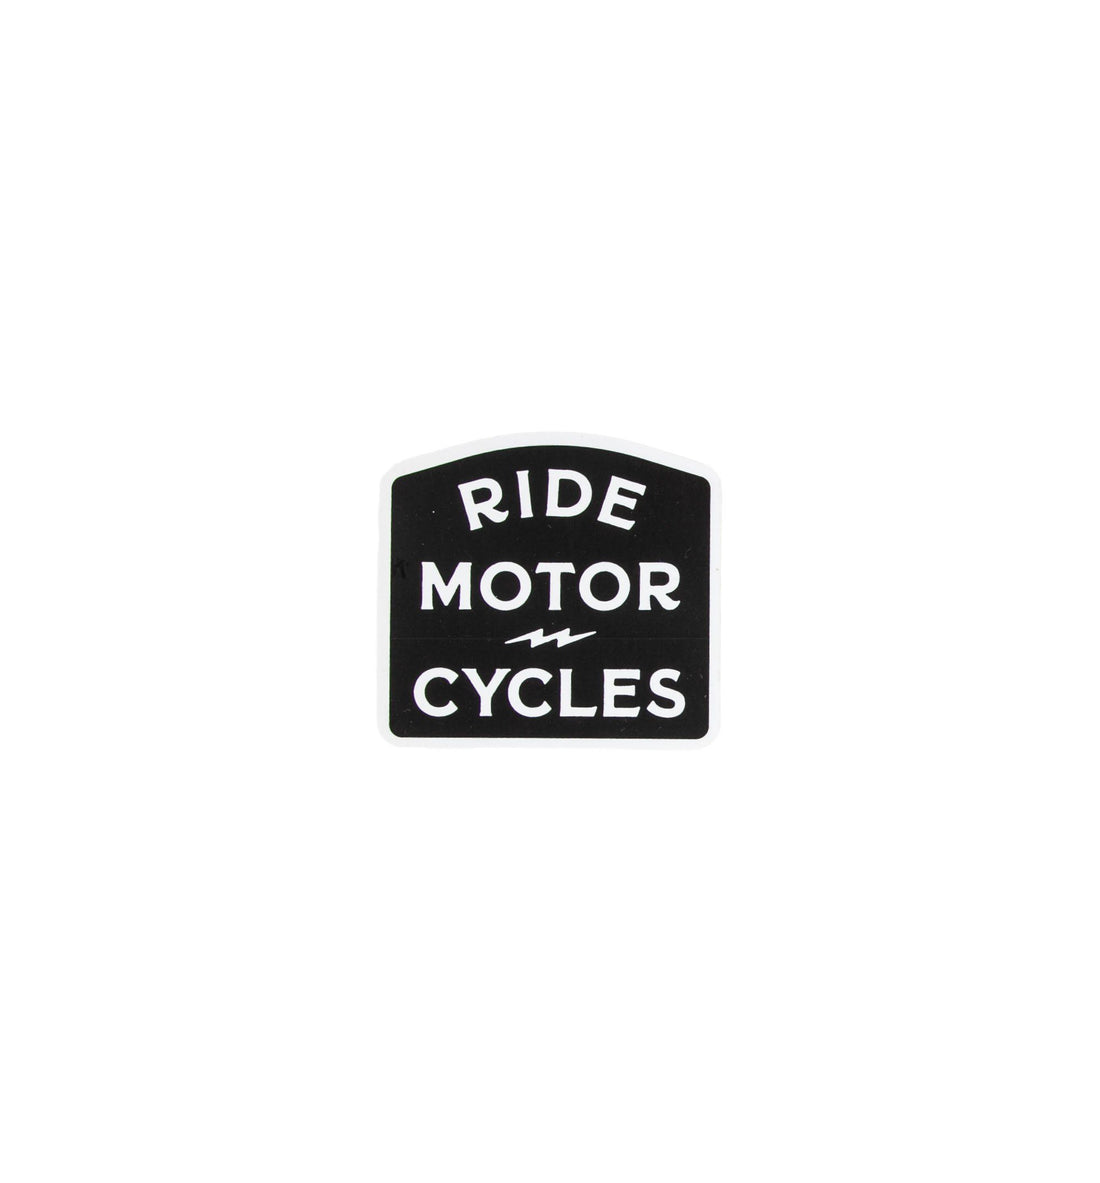 Ride Motorcycles Sticker - Stickers/Pins/Patches - Iron and Resin